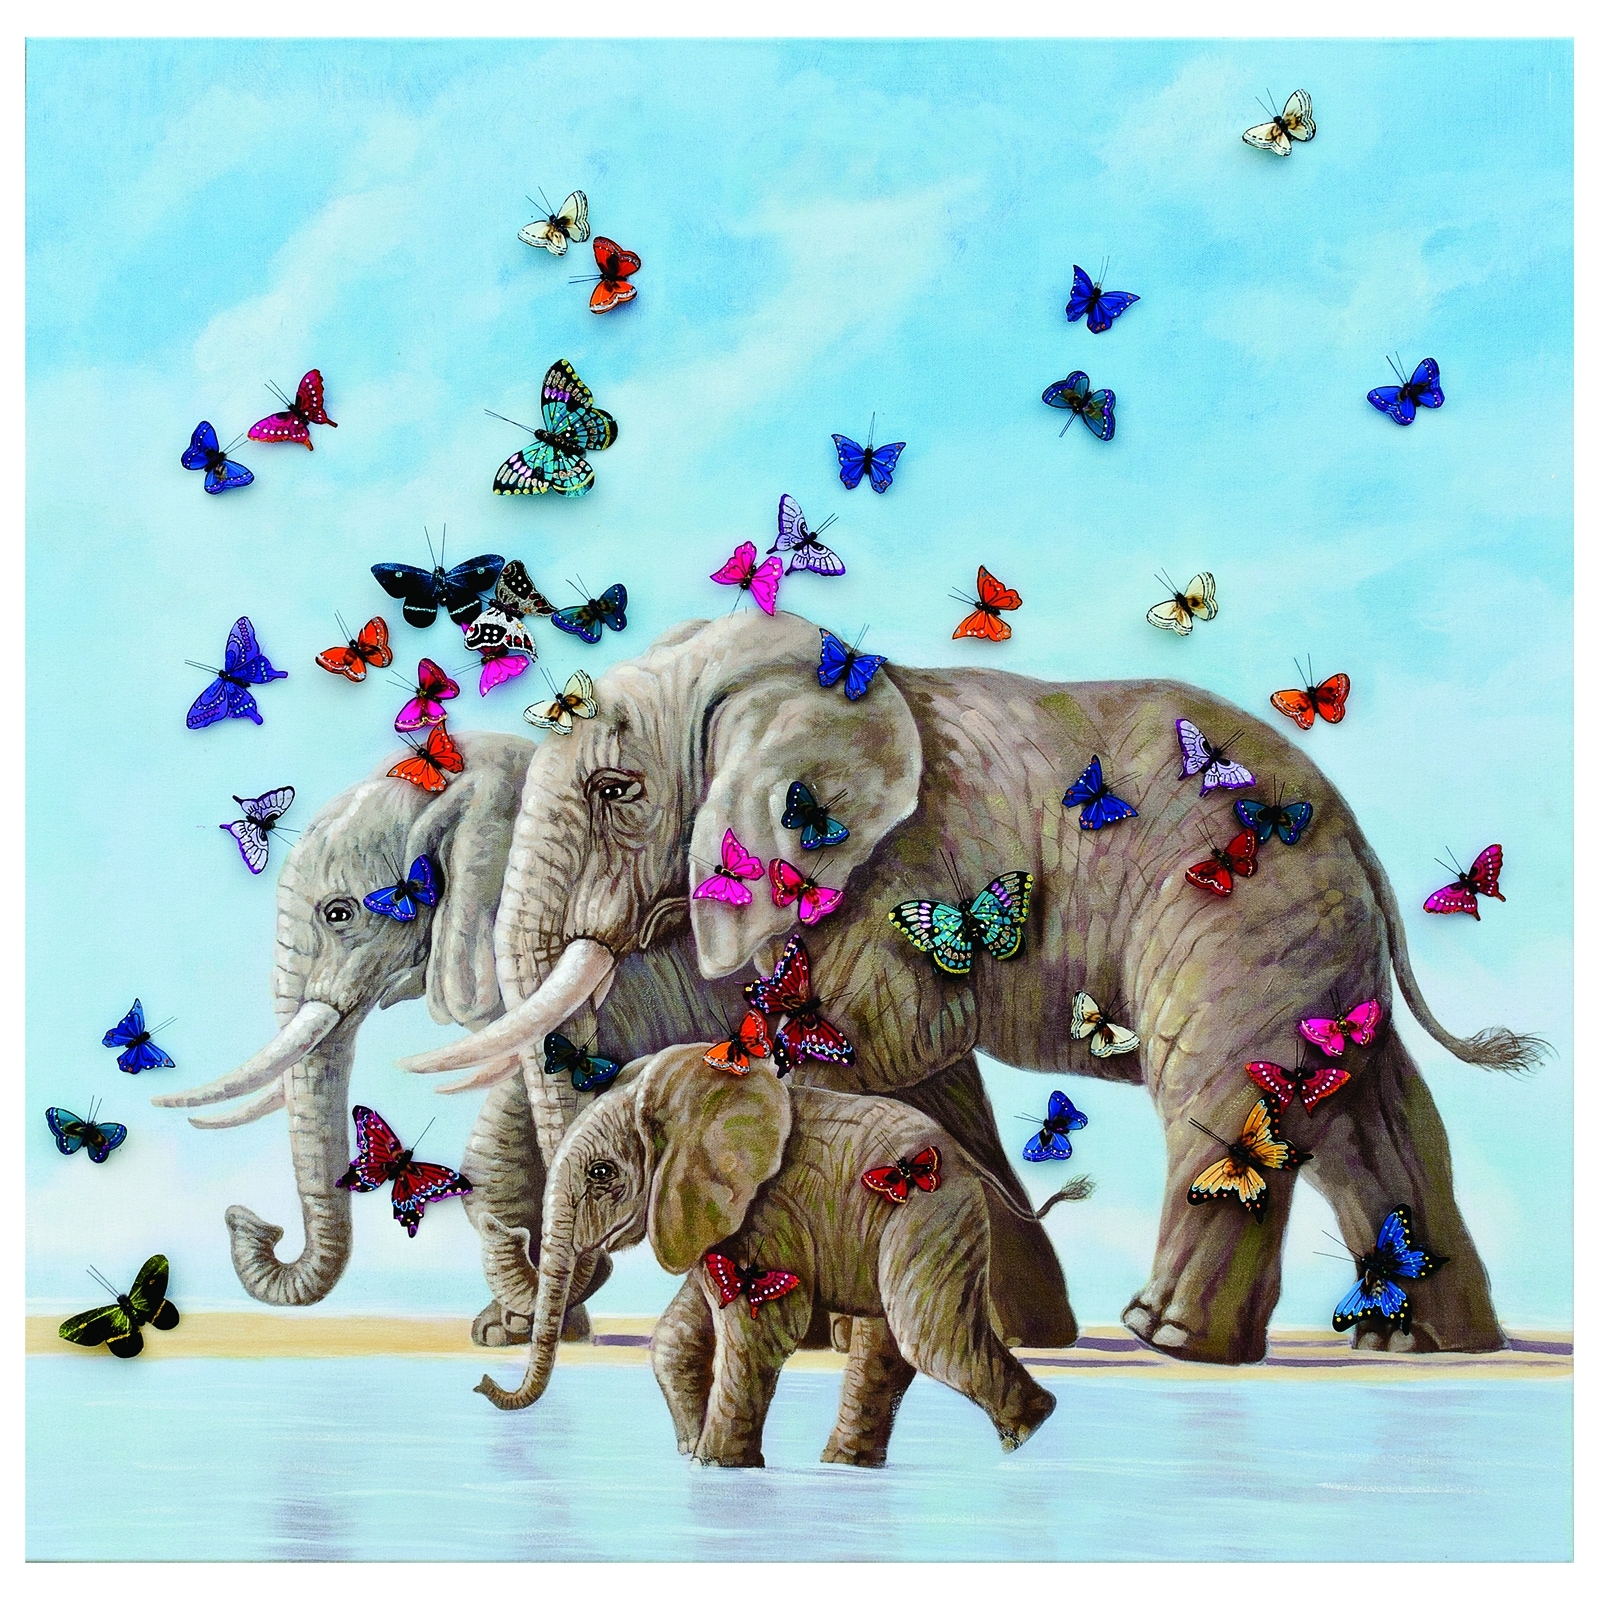 3D Butterfly & Elephant Wall Art | Living Rooms Direct Regarding Elephant Wall Art (Photo 20 of 20)